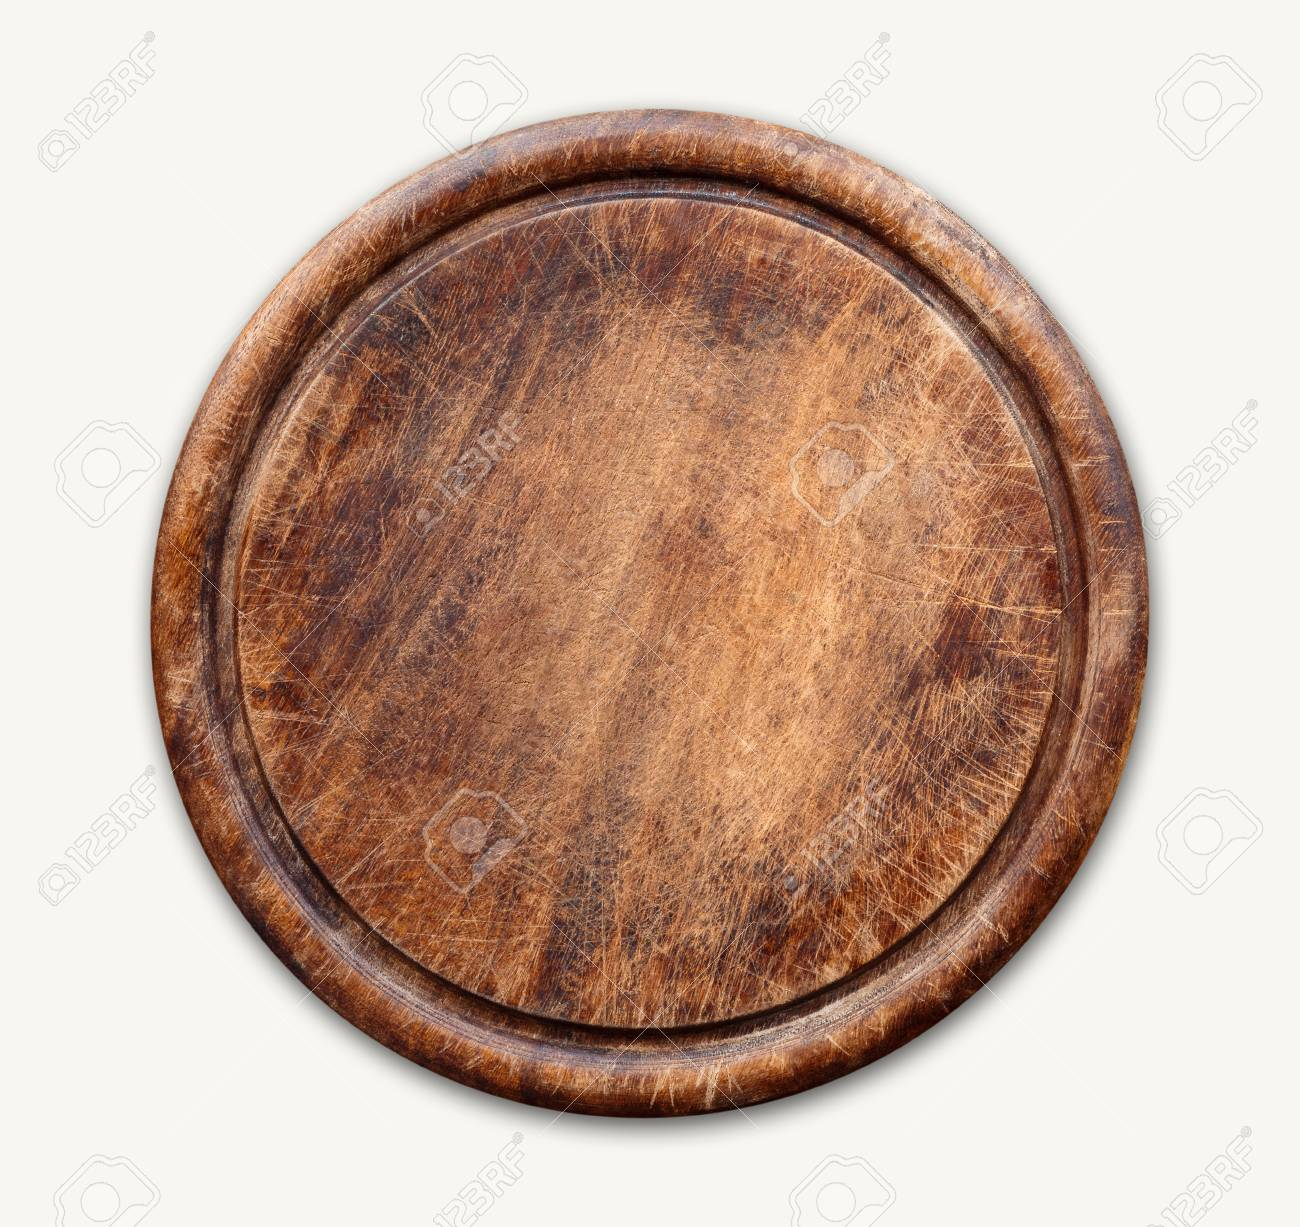 Round Wooden Cutting Board Isolated On White Background Closeup Stock Photo Picture And Royalty Free Image Image 94068053